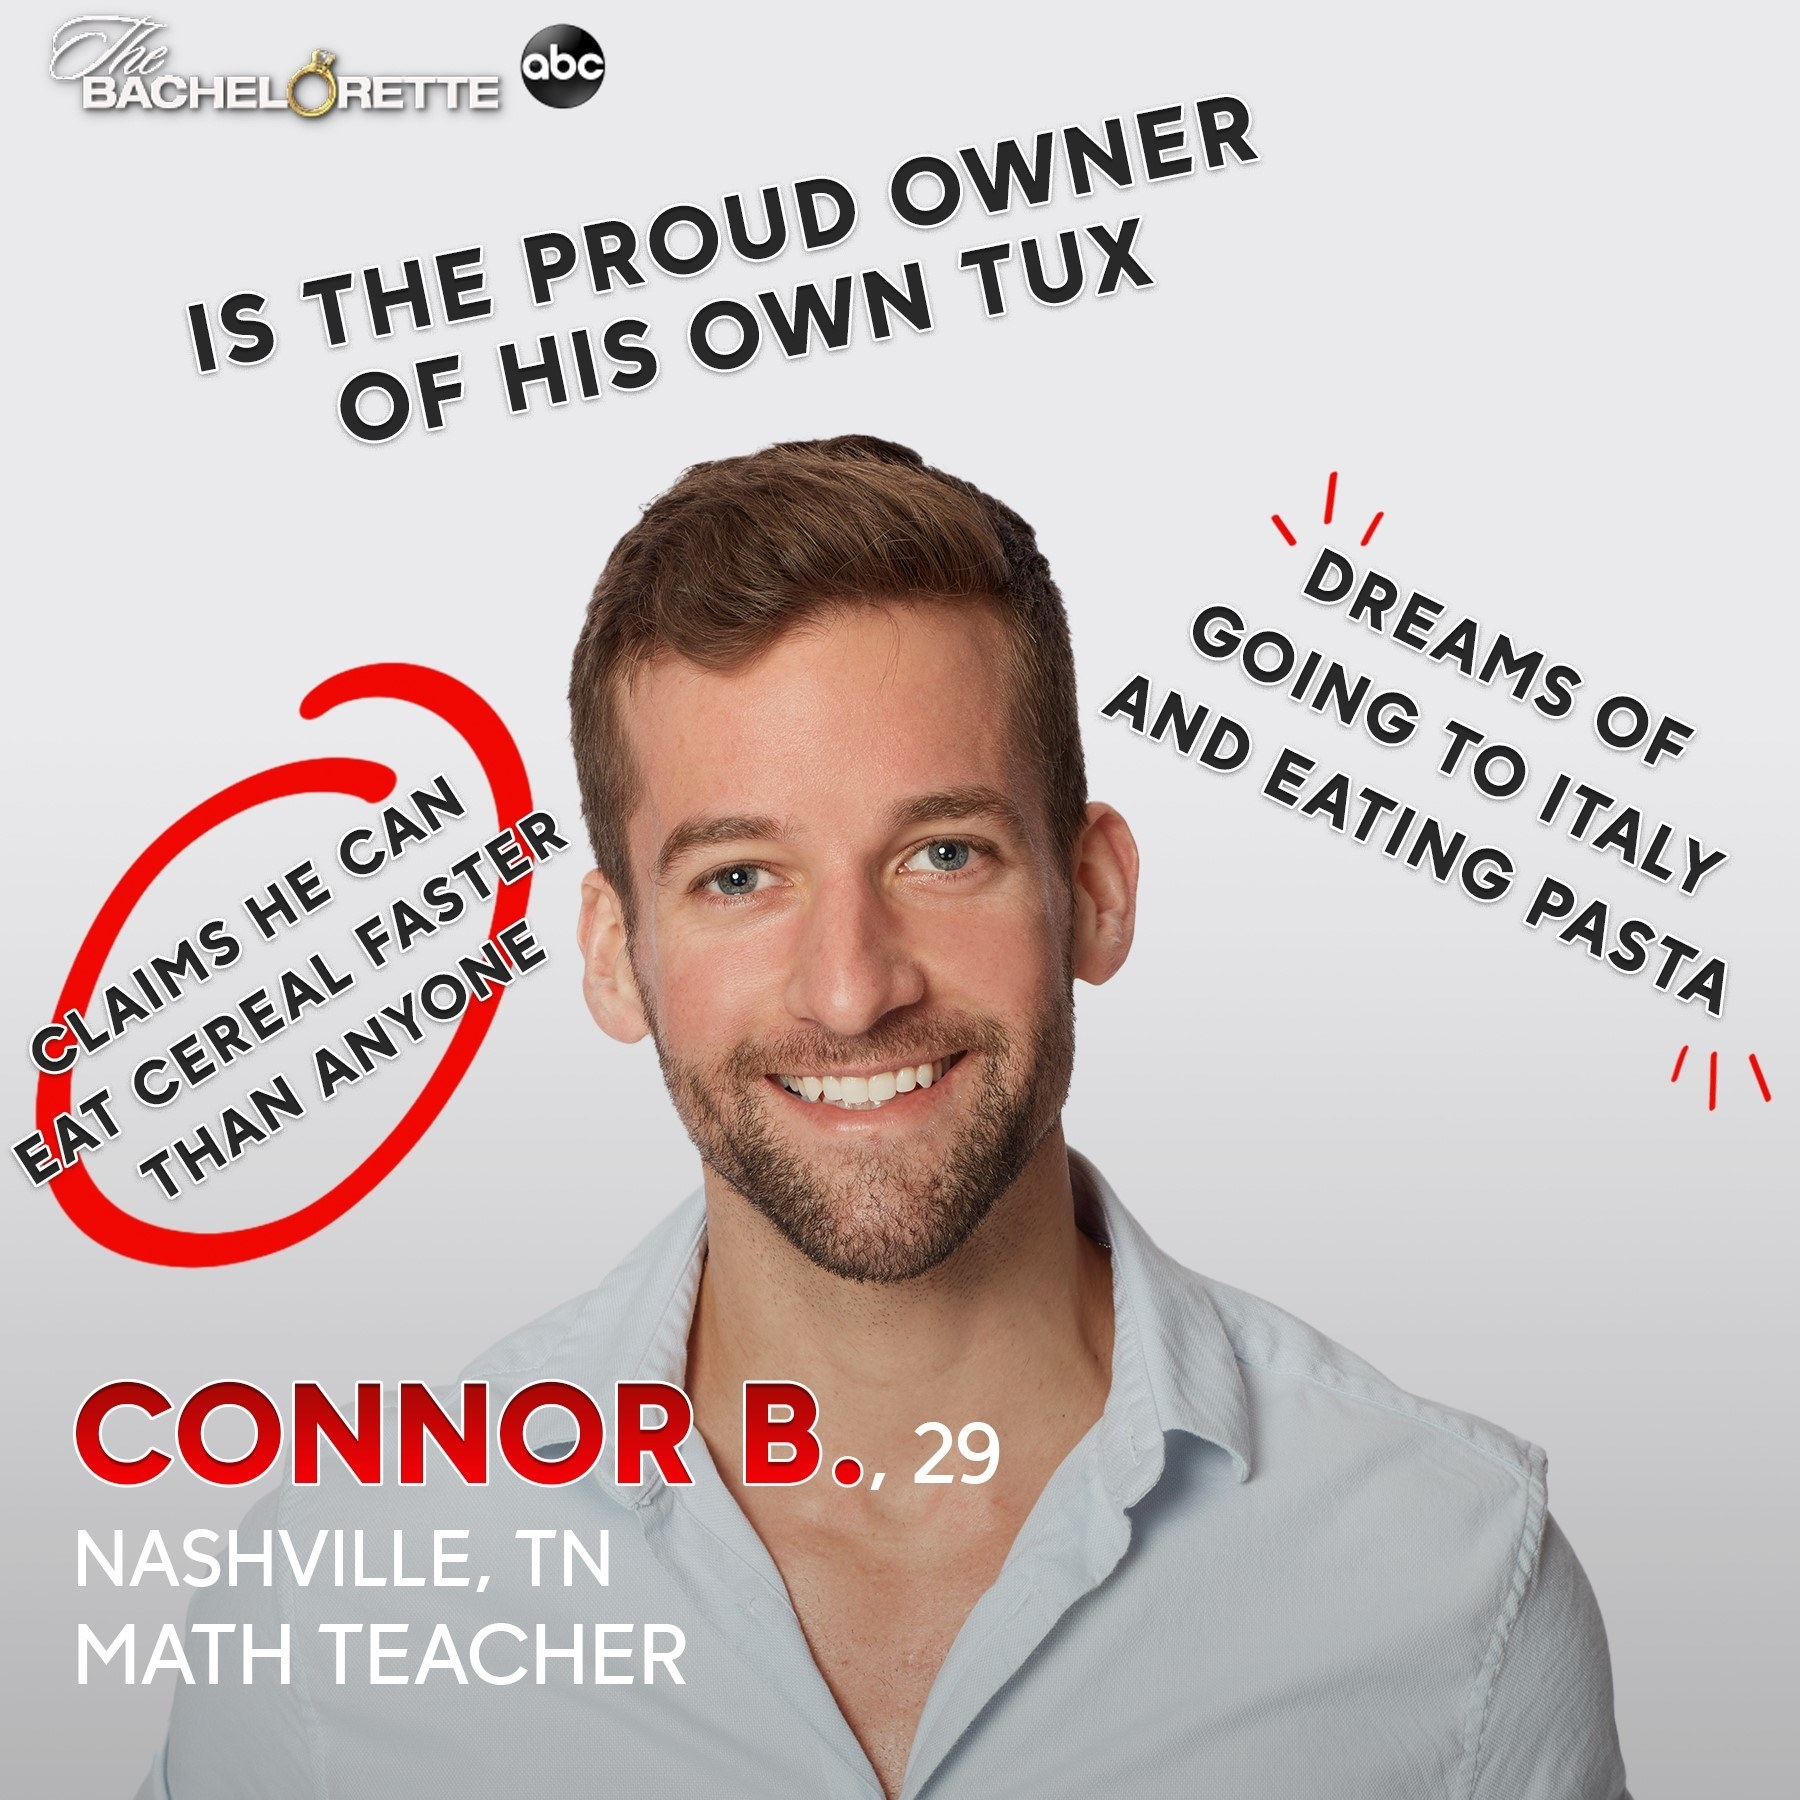 A math teacher who owns a tux and claims he can eat cereal faster than anyone else